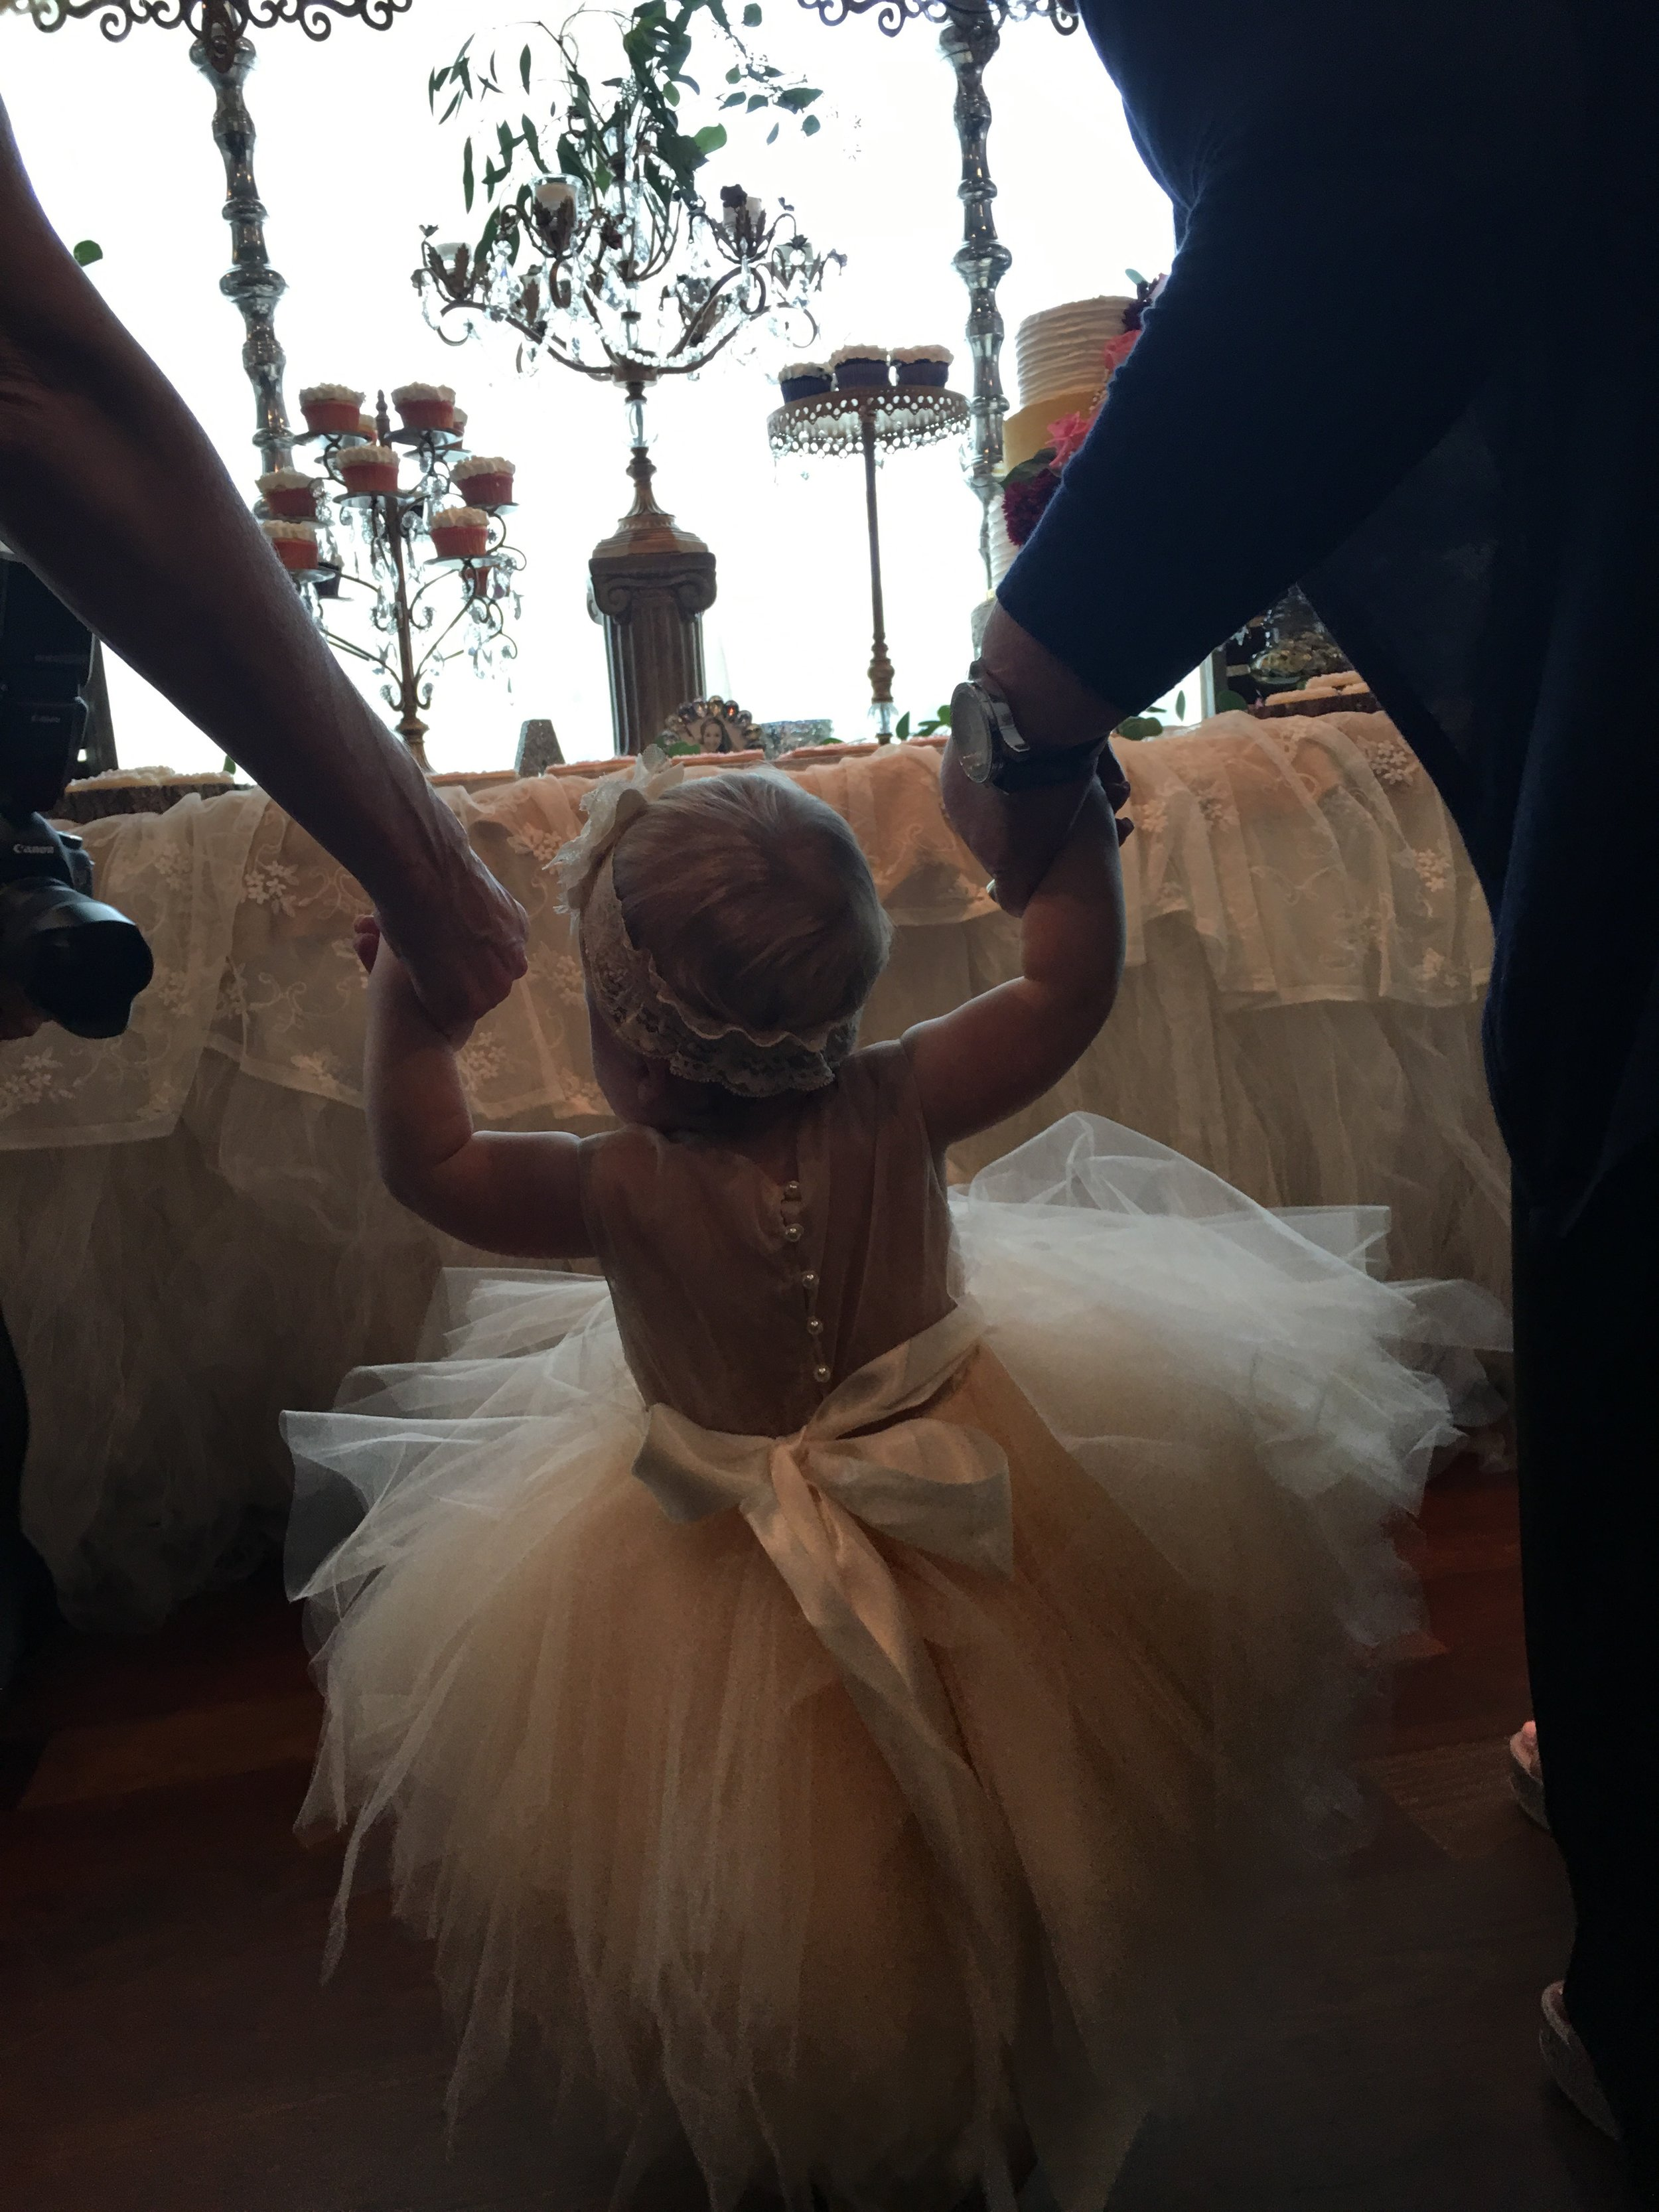 beautiful-and-blessed-events-hendricks-tavern-first-birthday-ava-rose-012